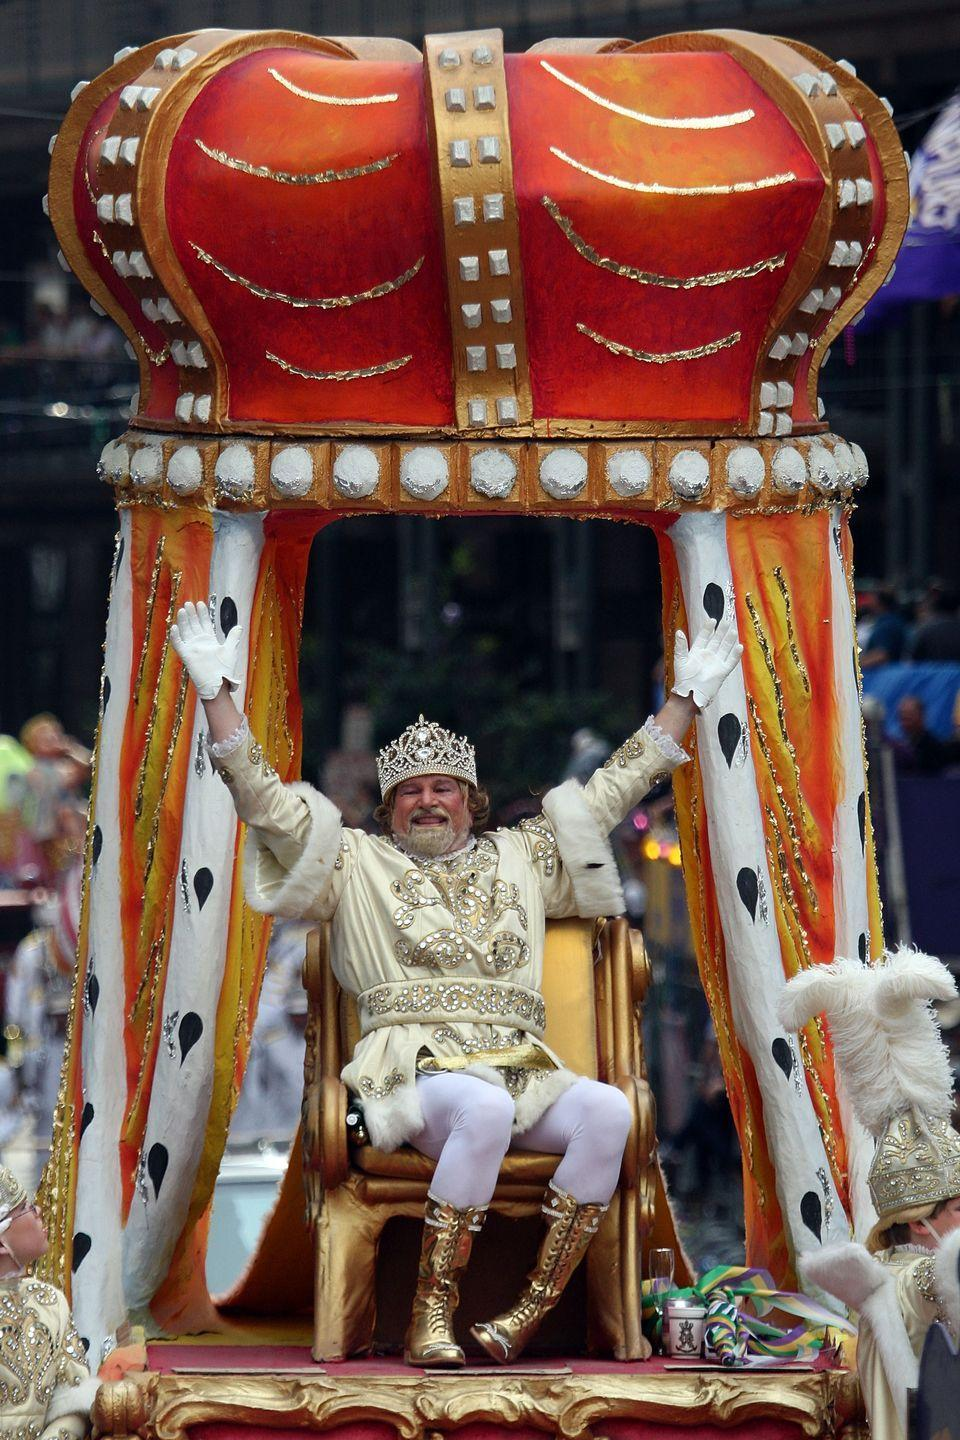 """<p>Mardi Gras is rife with royal court parodies; there are kings, queens, and jesters around every parade corner. But only one reigns as official king of Carnival: Rex, who sits on his throne in the Rex Organization's parade of eye-popping floats on Mardi Gras Day. The annually-selected monarch receives a symbolic golden <a href=""""https://www.nola.com/archive/article_80291f01-6f53-539f-9f91-8dd921928320.html"""" rel=""""nofollow noopener"""" target=""""_blank"""" data-ylk=""""slk:key to the city"""" class=""""link rapid-noclick-resp"""">key to the city</a>, and he in turn decrees that it's time for the city to shut down and celebrate. </p>"""